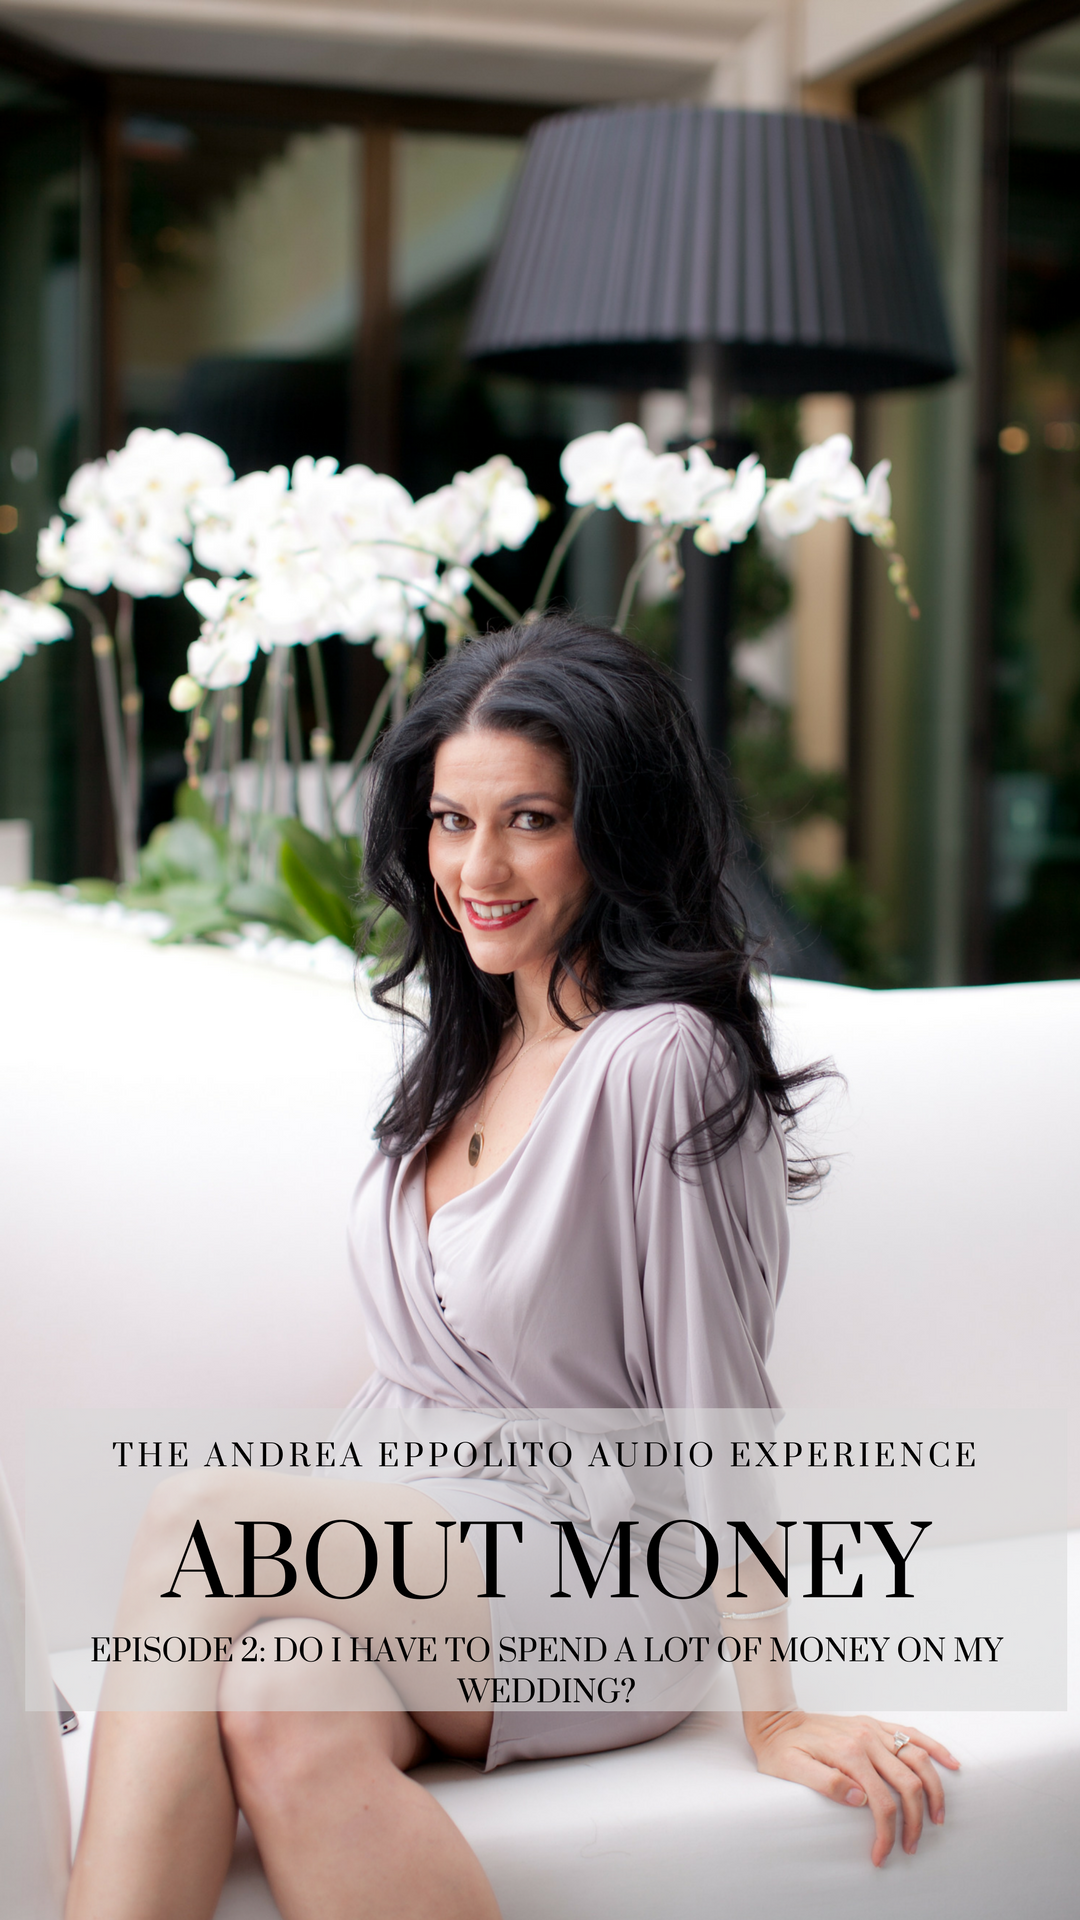 Las Vegas Wedding Planning Podcast. How much money do you have to spend on a wedding? Andrea Eppolito hosts a podcast discussing life, luxury, and above all else...love.